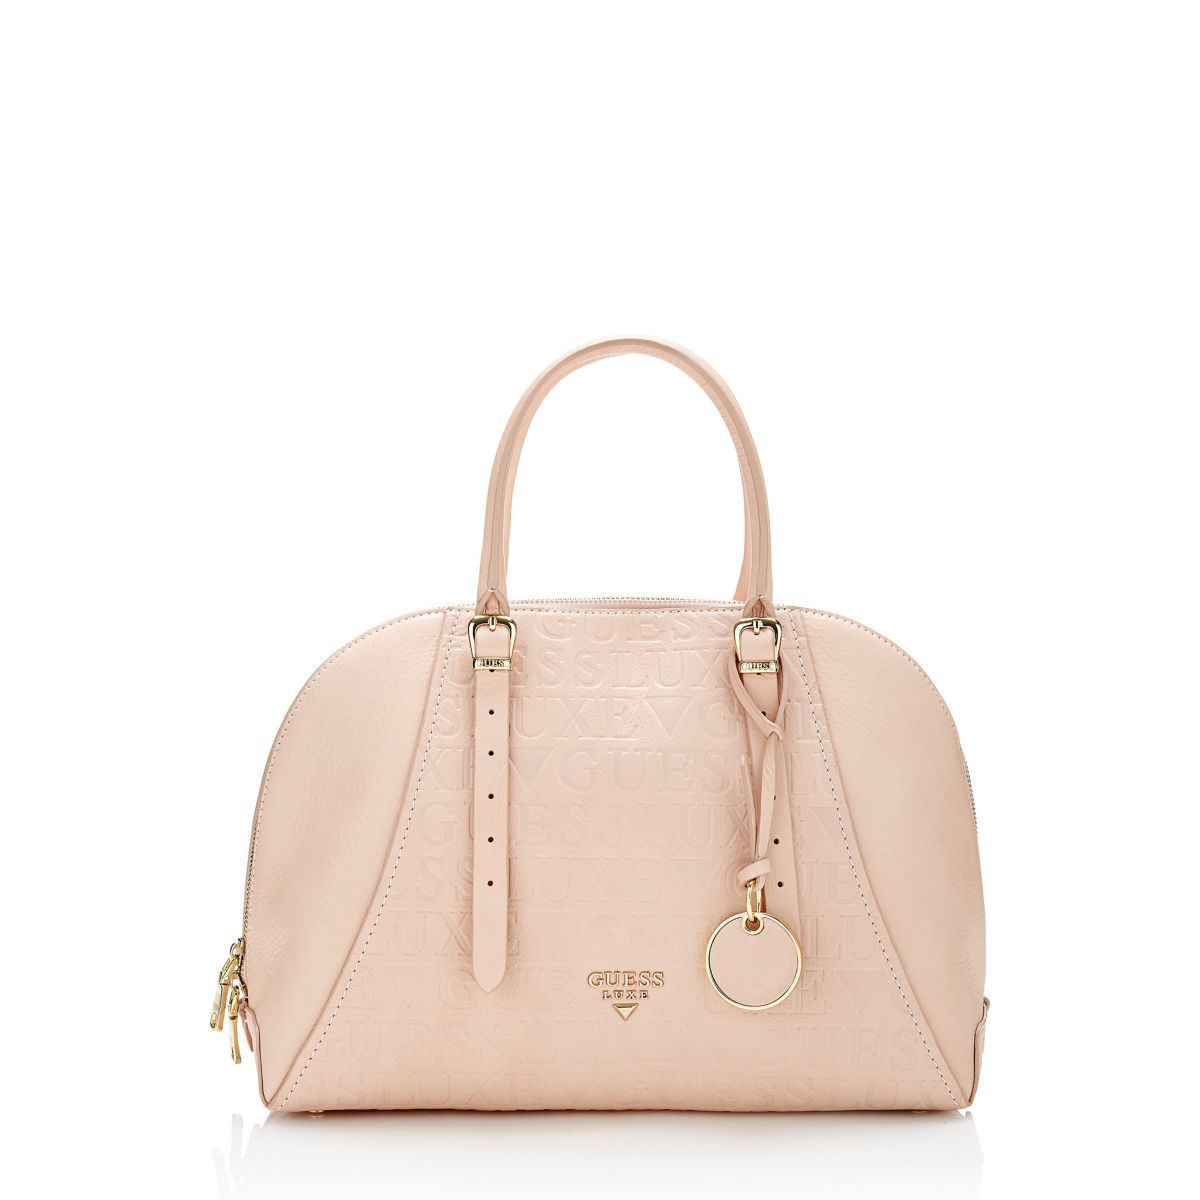 GUESS Guess BAULETTO-TASCHE LADY LUXE AUS LEDER